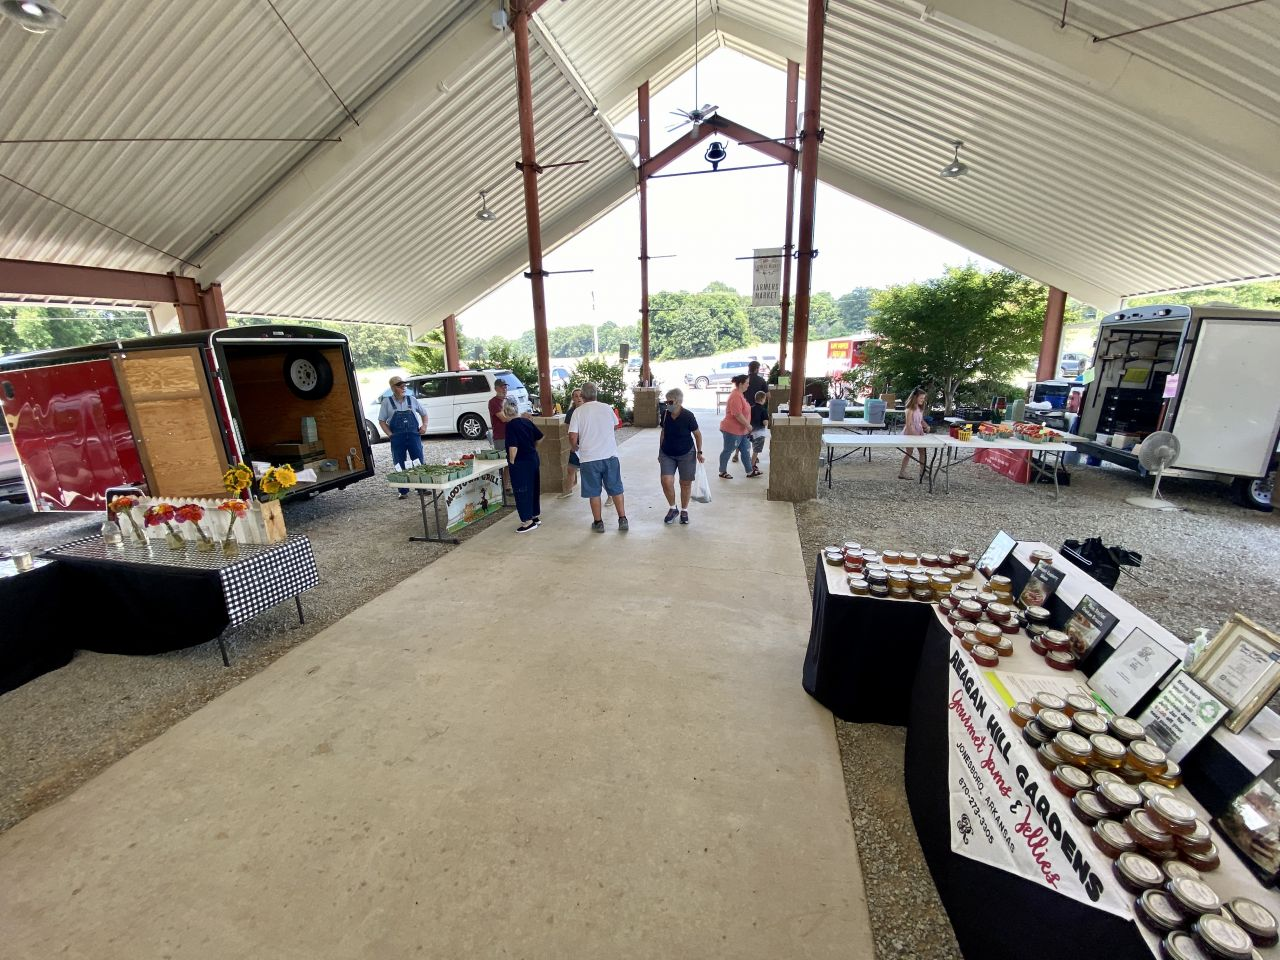 Wide view of the ASU Regional Farmers Market Pavilion and the booths within